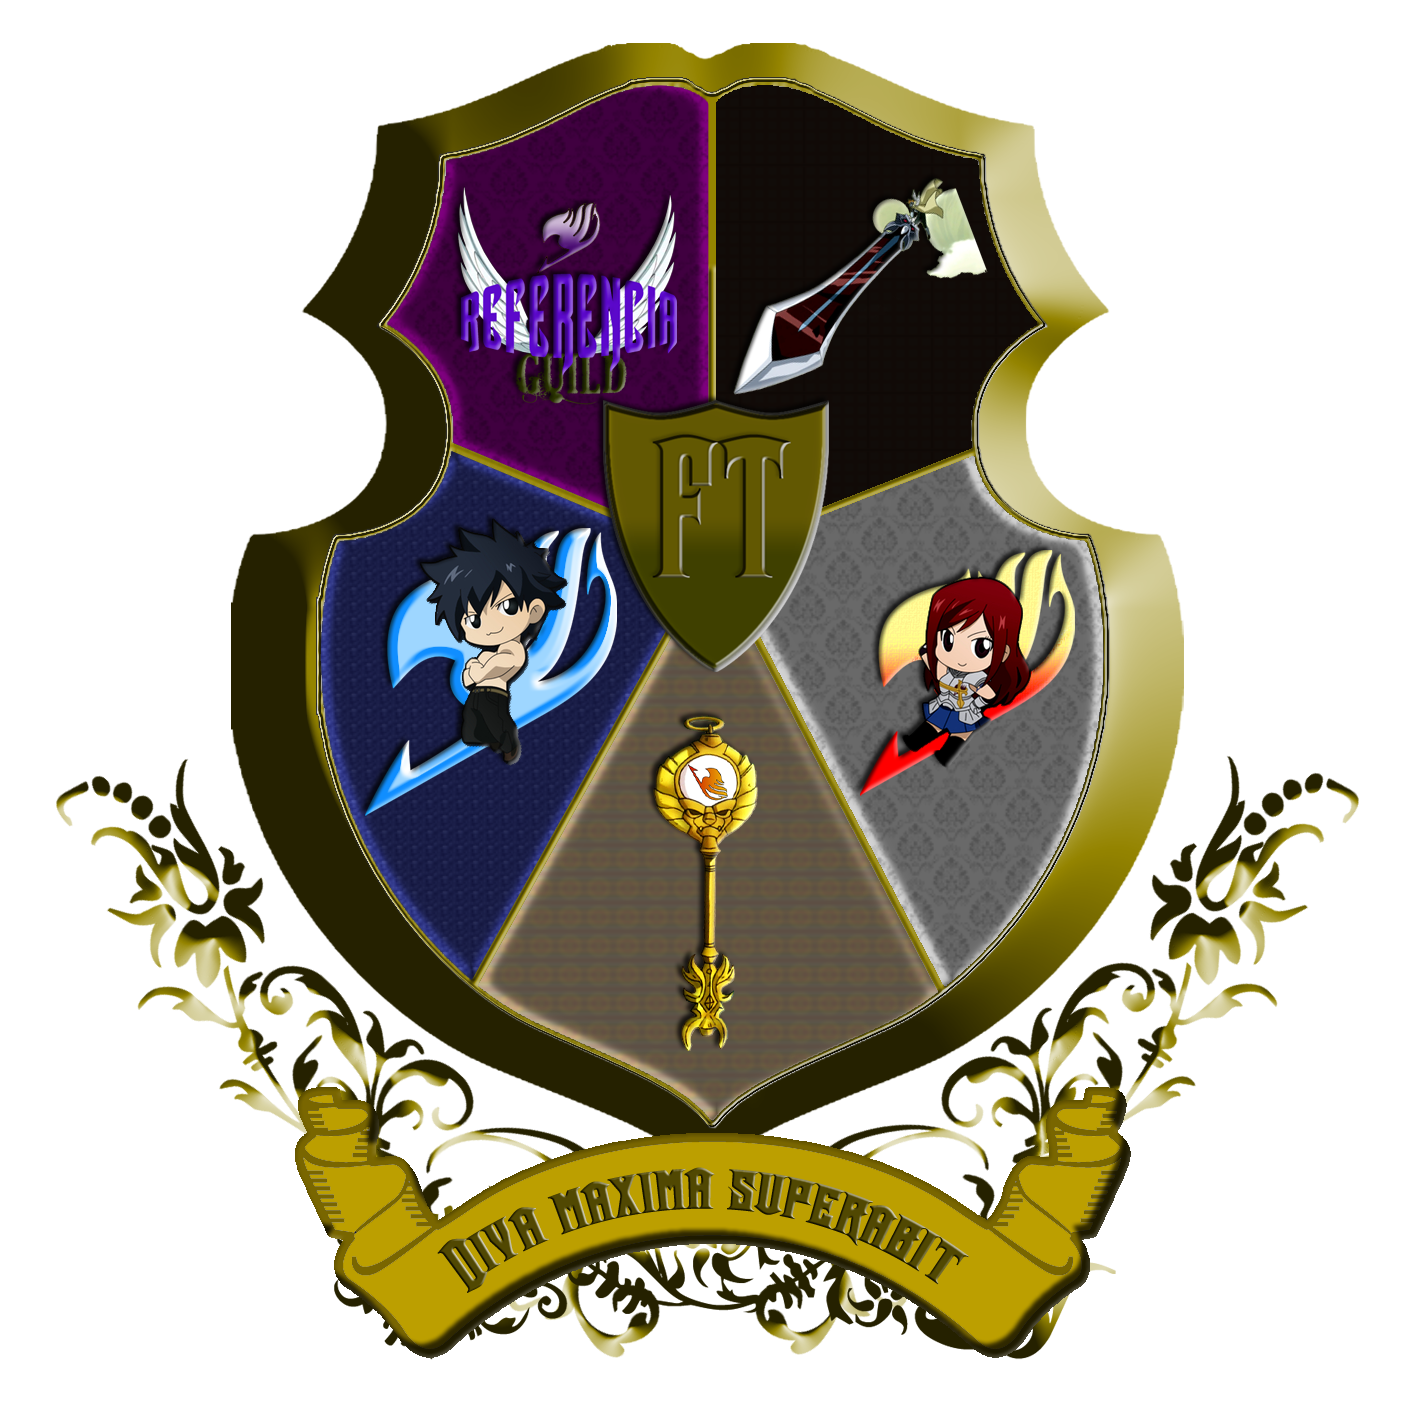 Fairy tail wiki talkreferencia guildarchive 2 fairy tail wiki guilds crest badge buycottarizona Gallery